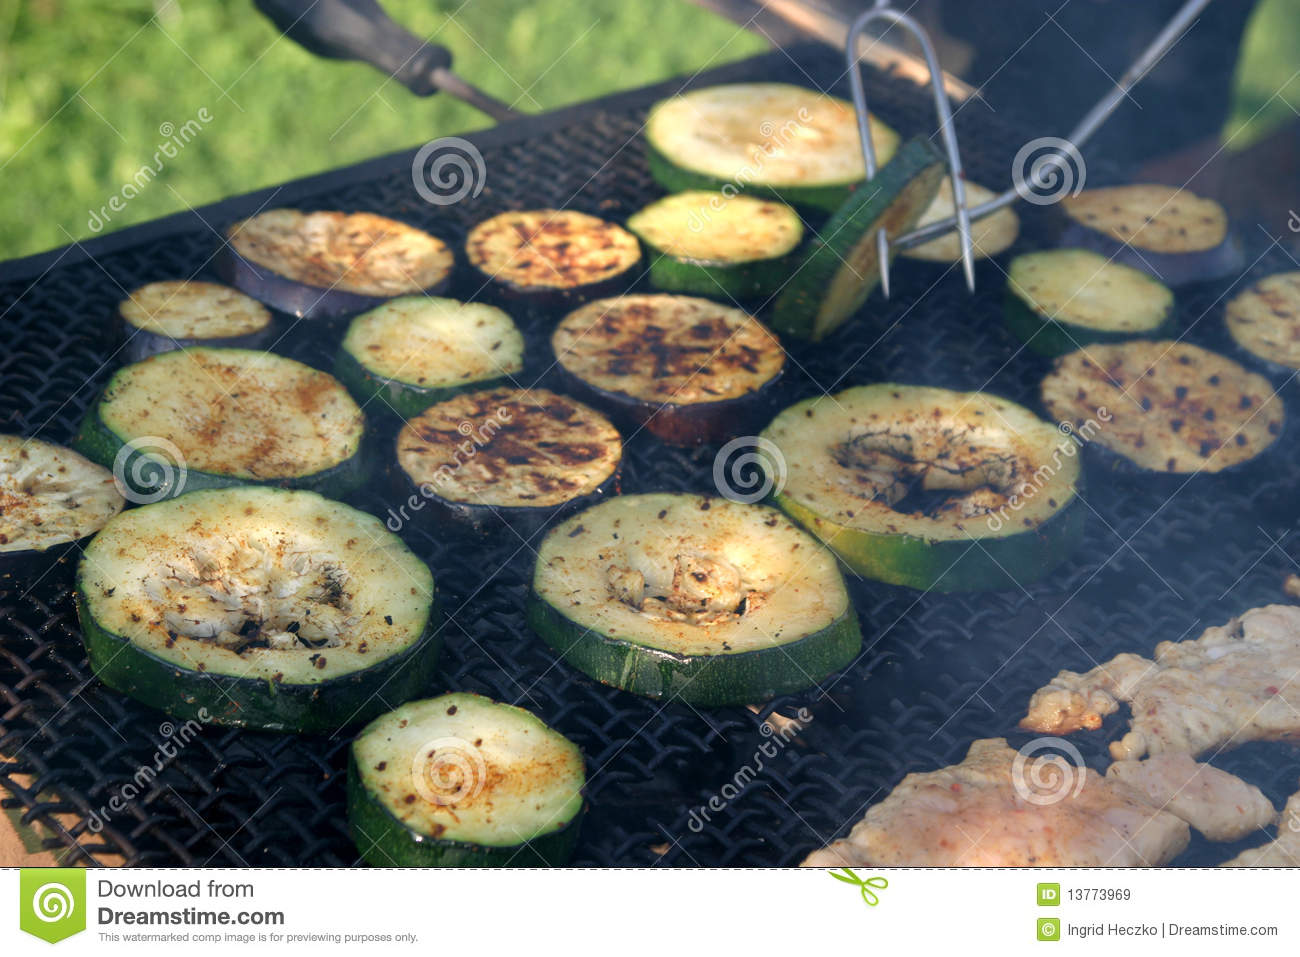 how to cook eggplant on barbecue